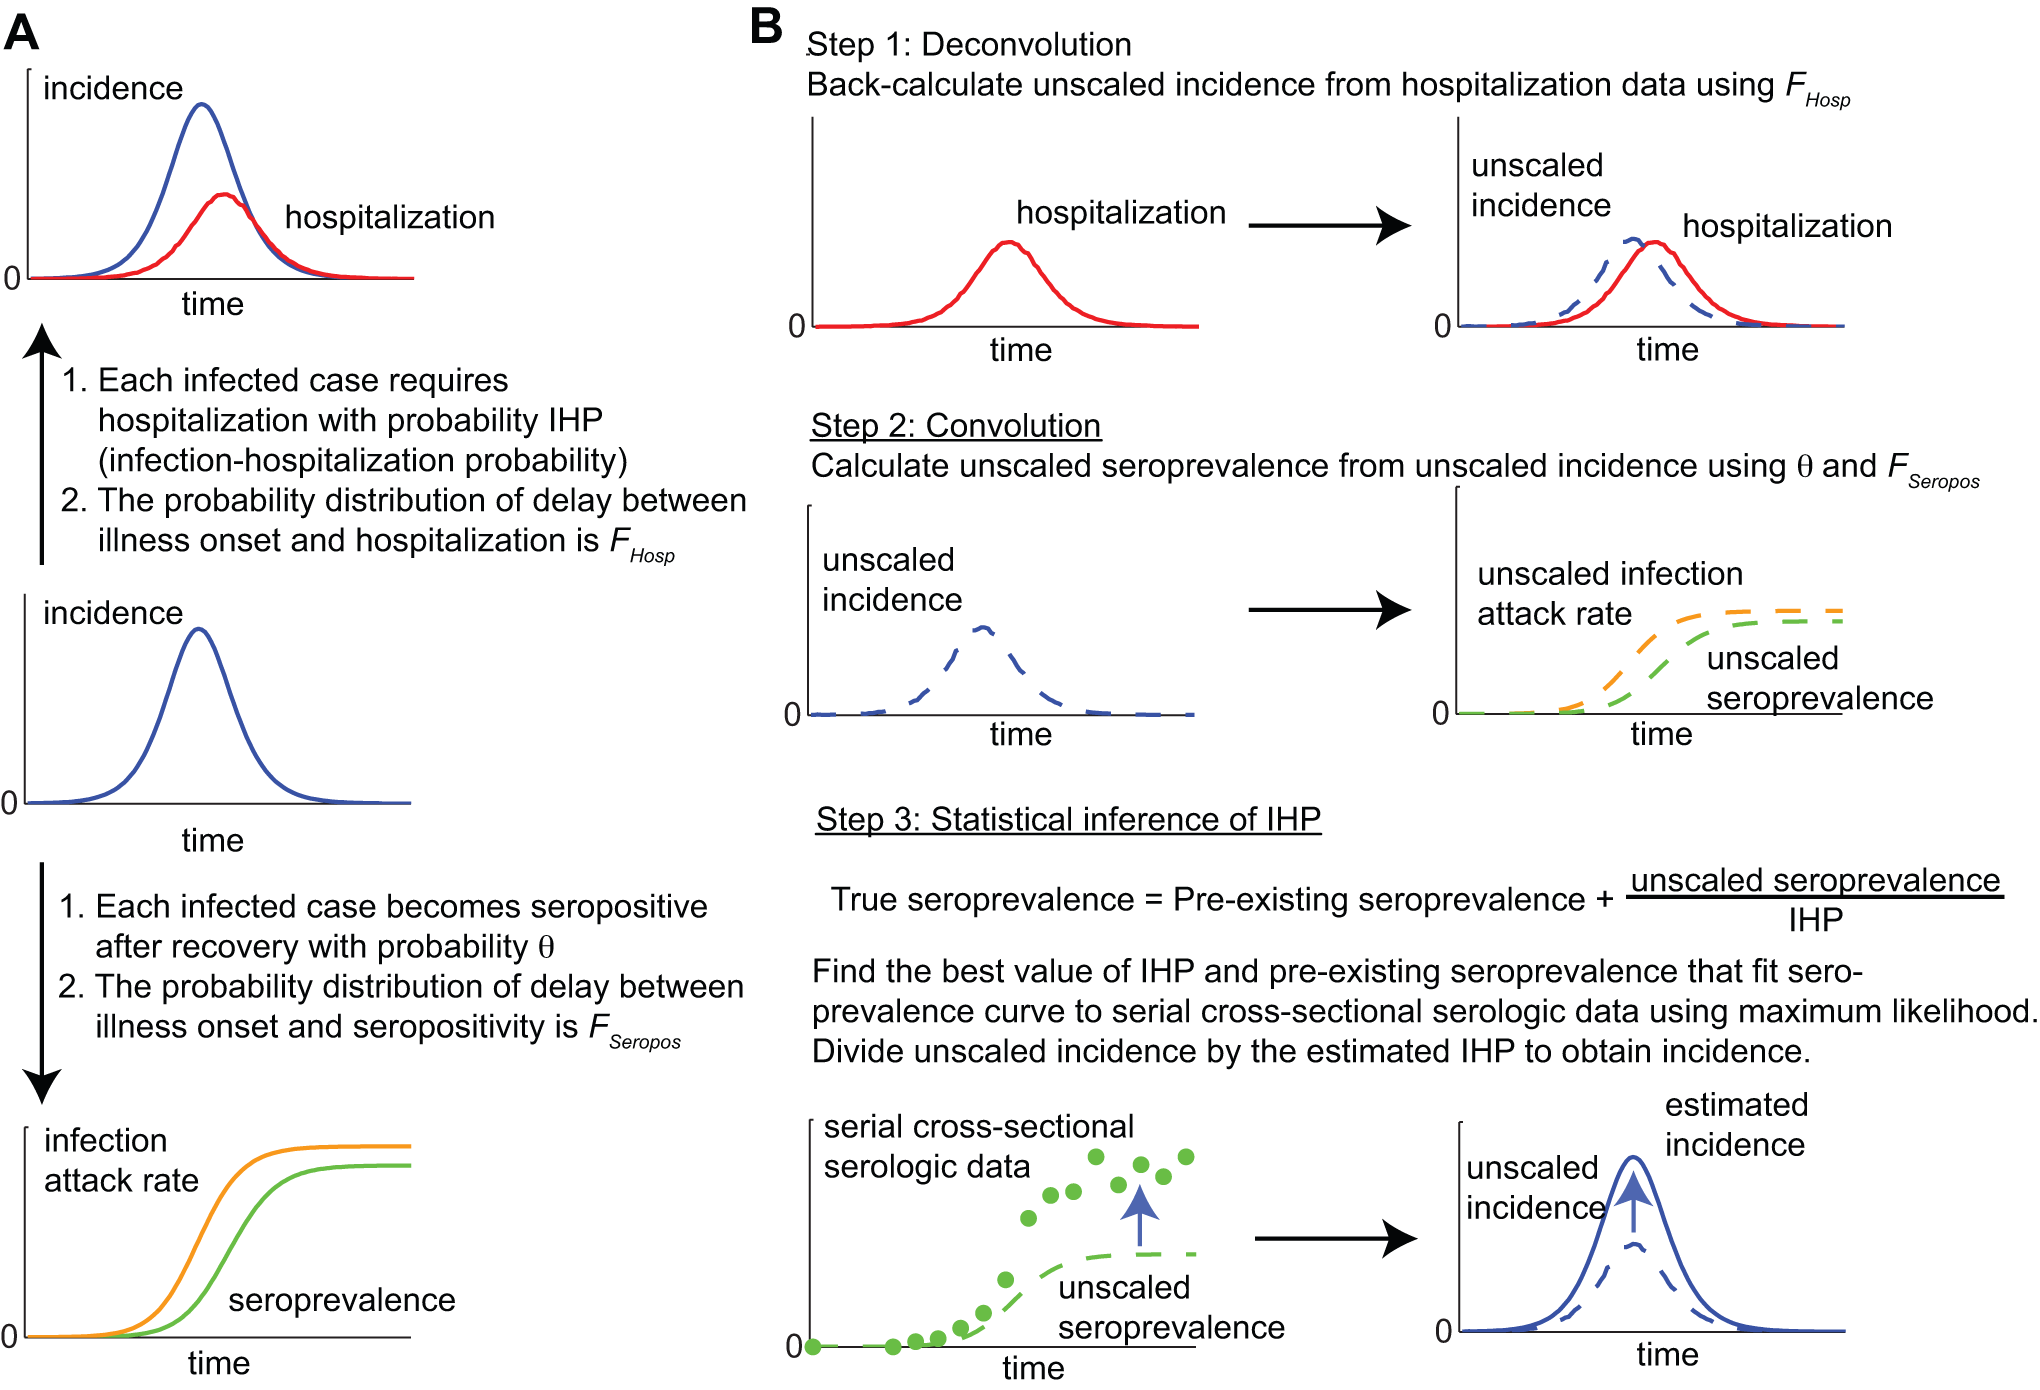 A schematic of the convolution-based method for real-time estimation of IHP and IAR from hospitalization and serial cross-sectional serologic data.